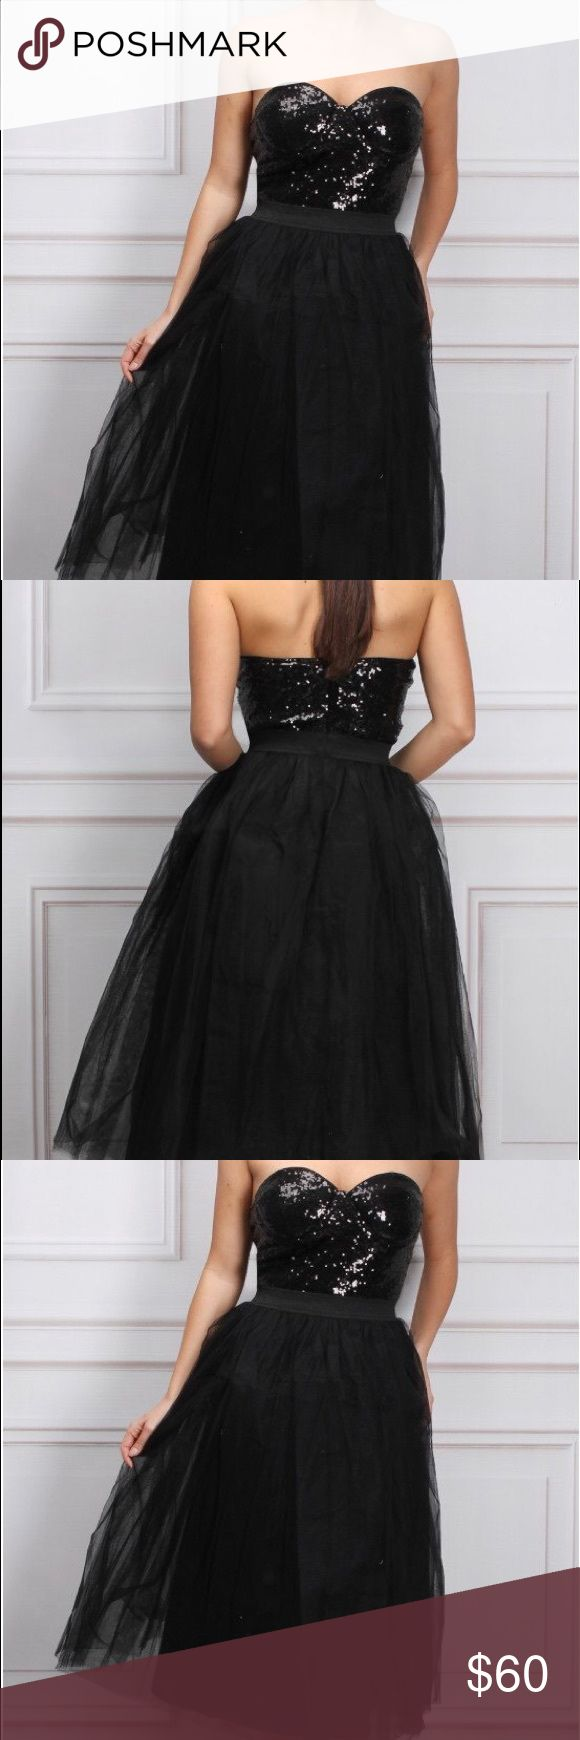 PROMBlack bustier dress sequin top tulle skirt Beautiful black sequin and tulle bustier dress NEW Zara Dresses Prom